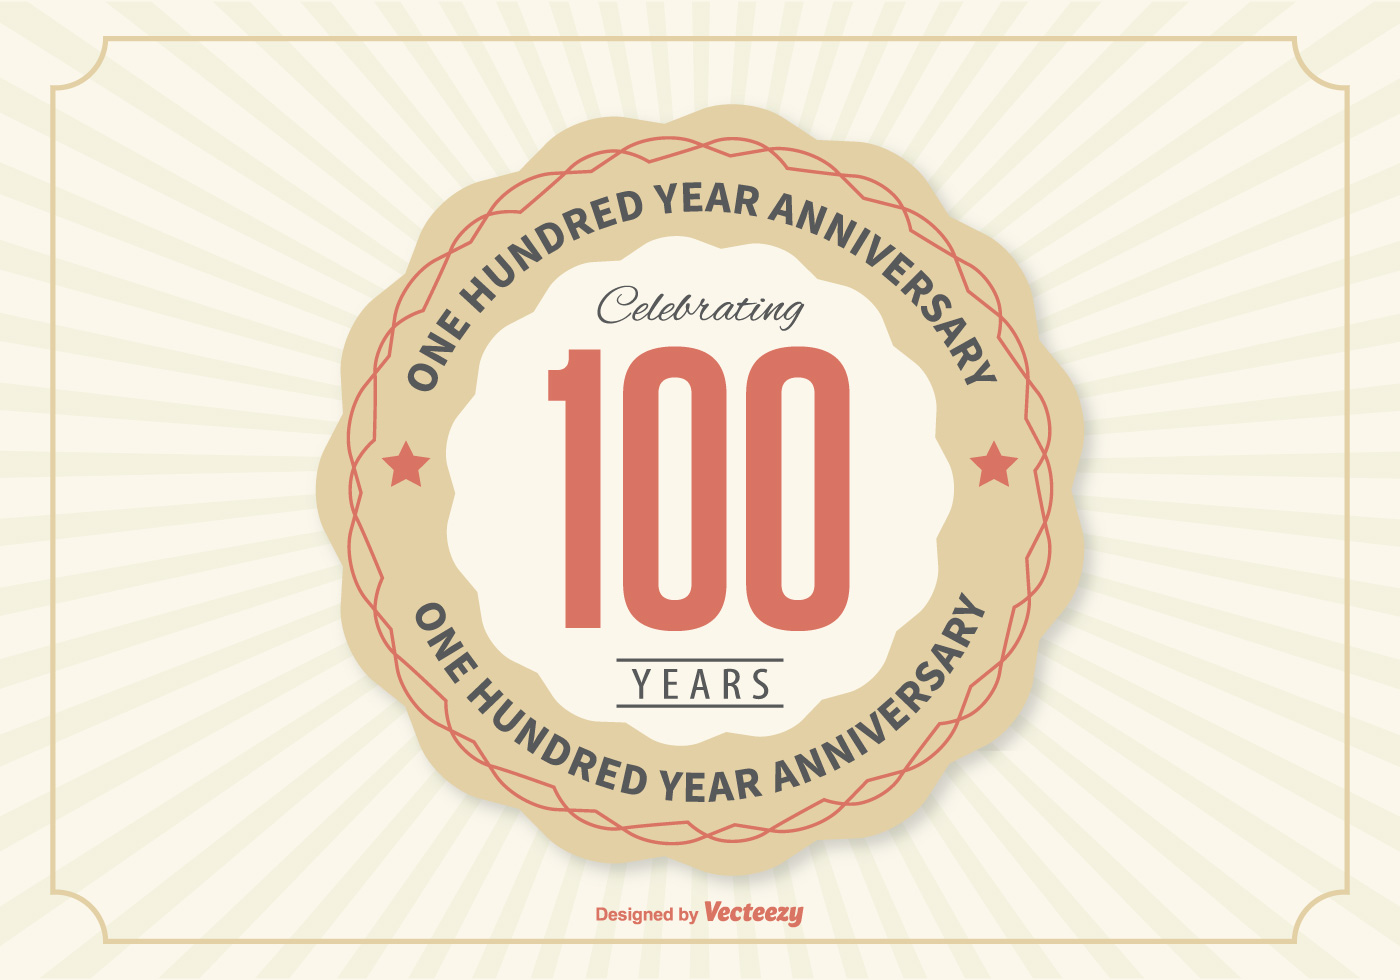 100 Year Anniversary Illustration Download Free Vector